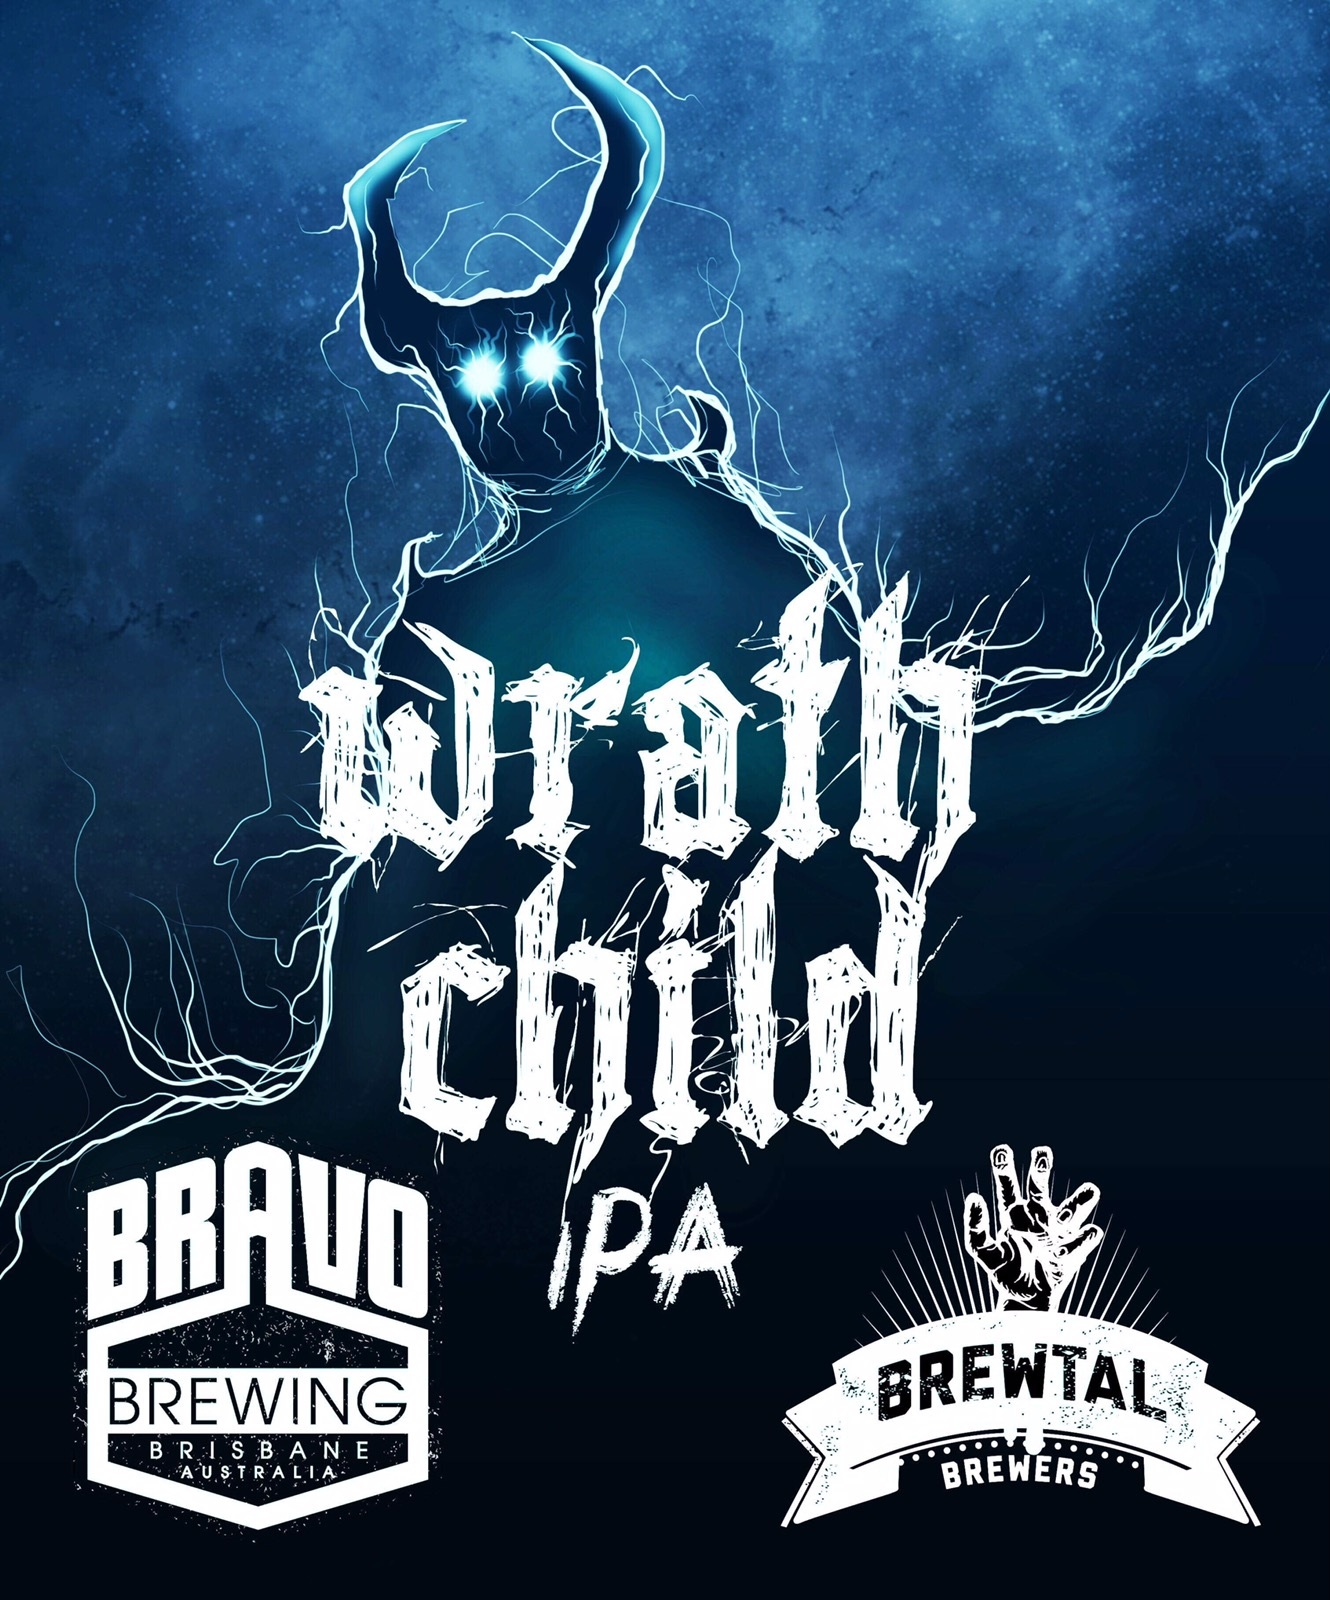 Our latest release in collaboration with Brewtal Brewers- Wrath Child